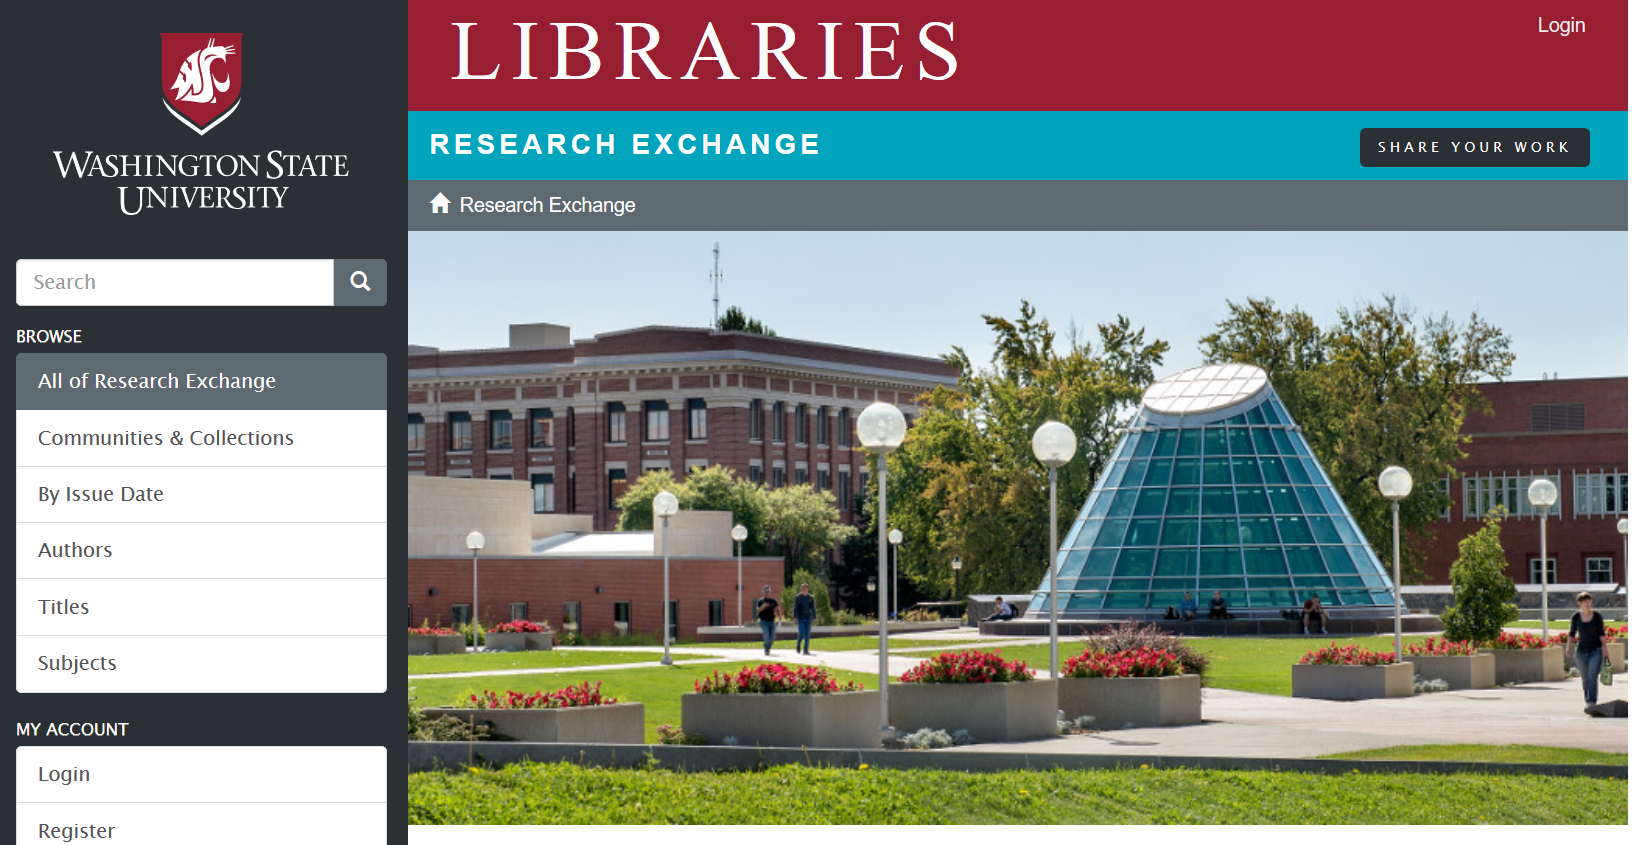 Research Exchange home page